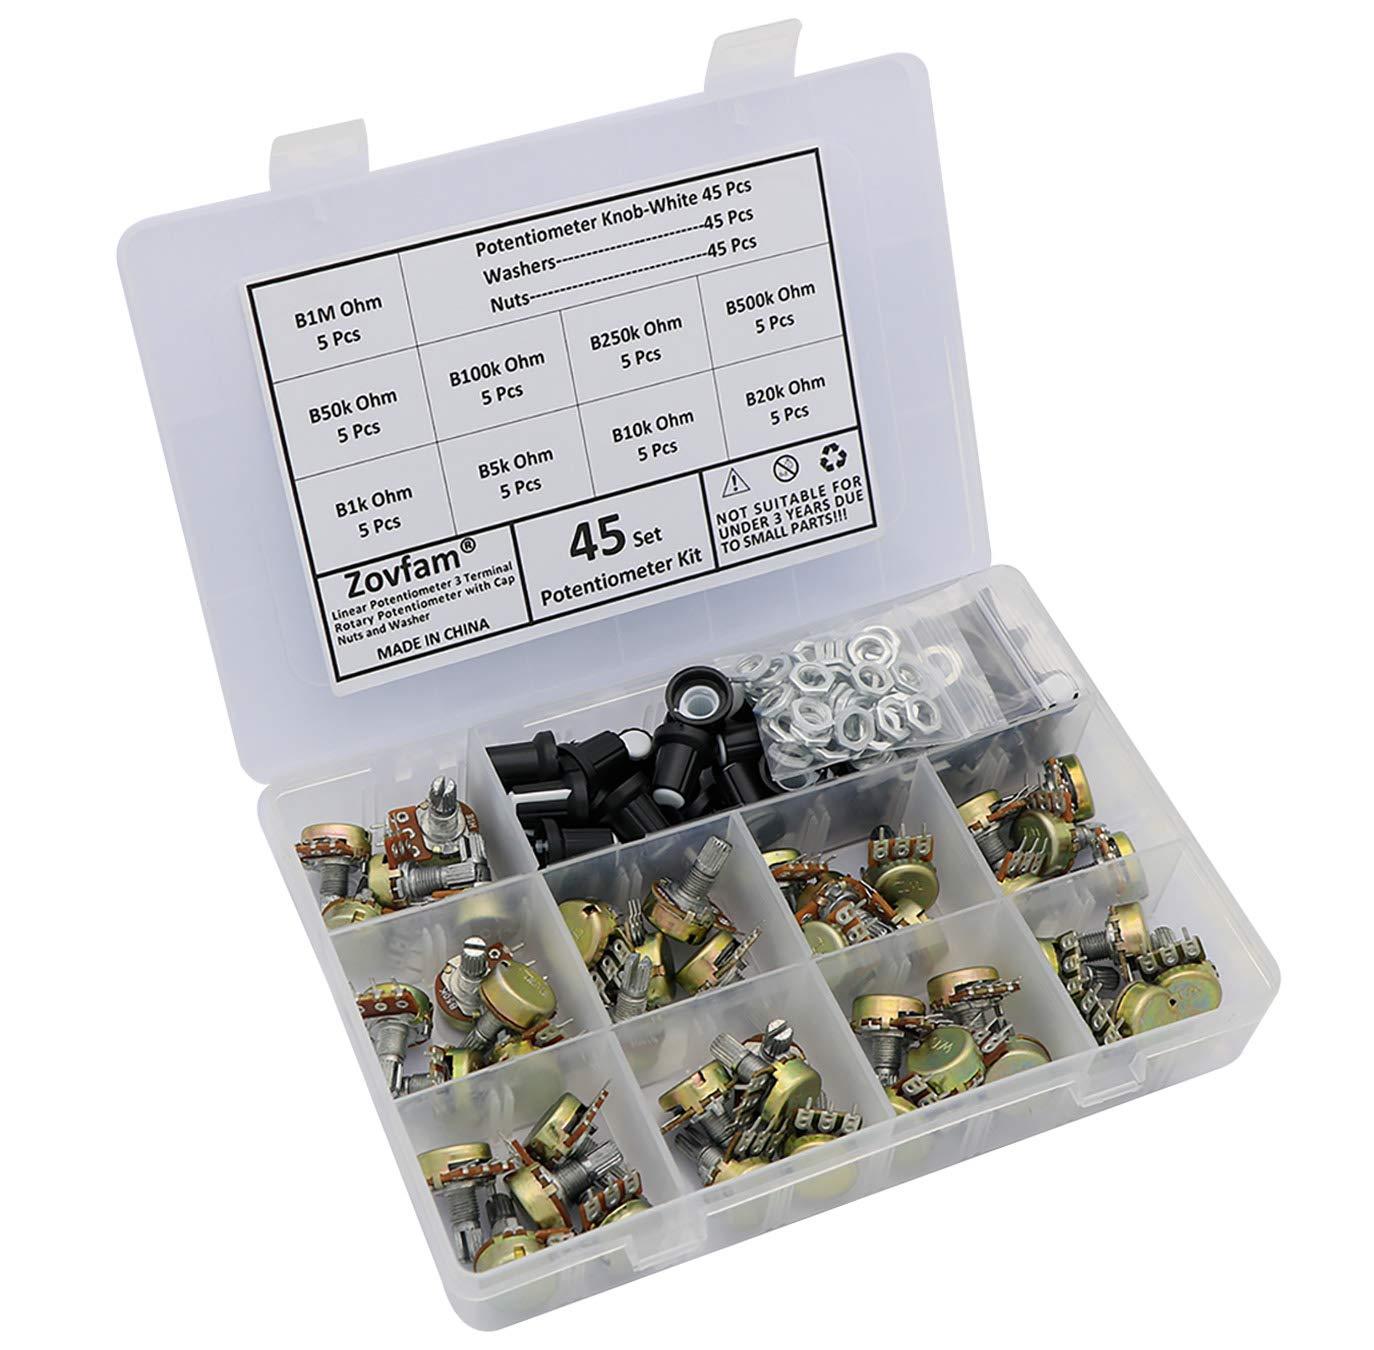 Potentiometer Kit Clearance SALE Limited time 9 Values Linear Large special price !! 3 Rota Terminal